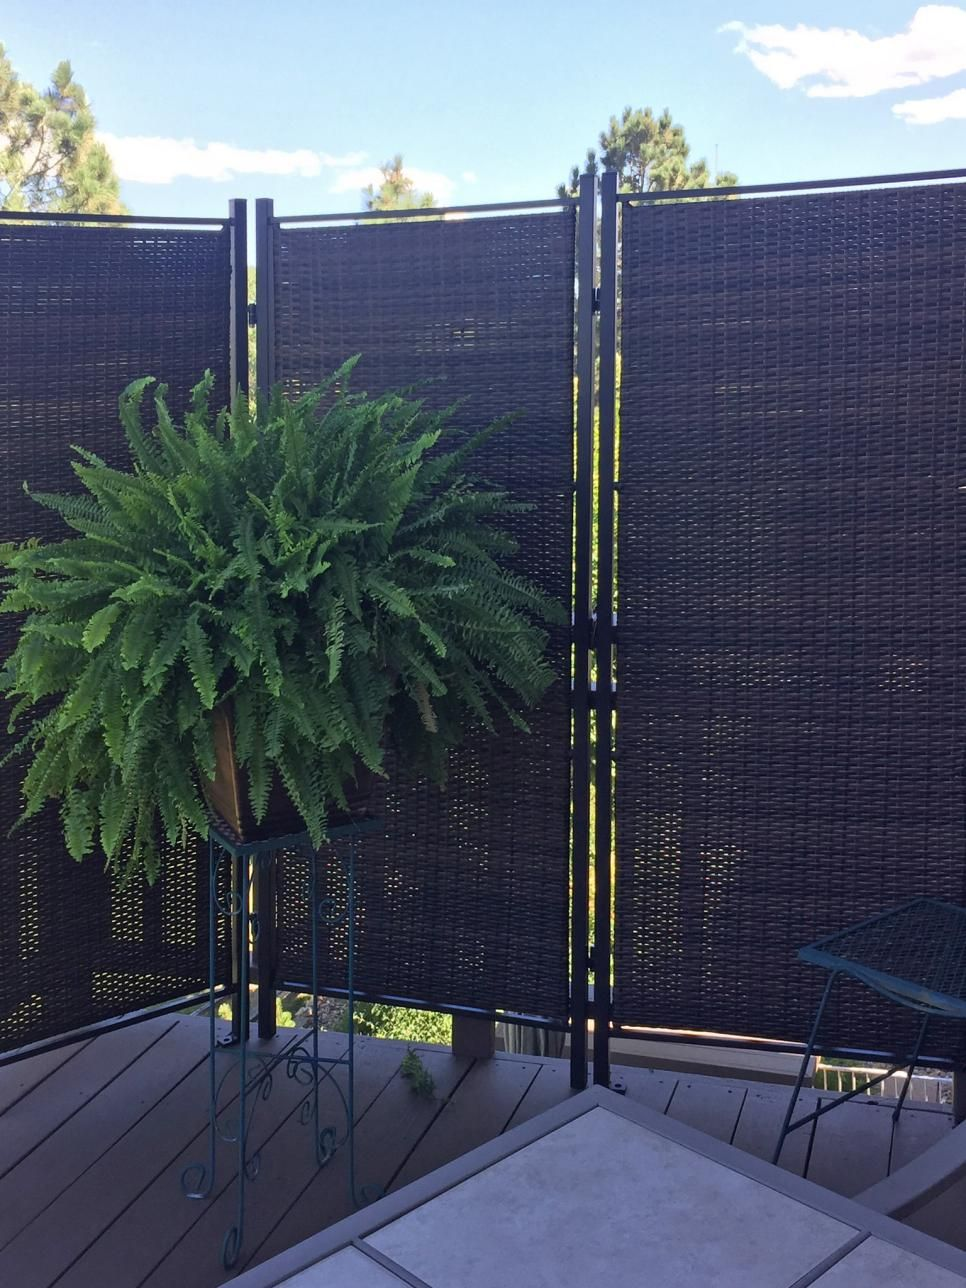 18 Easy Ways to Add Privacy to a Deck or Patio